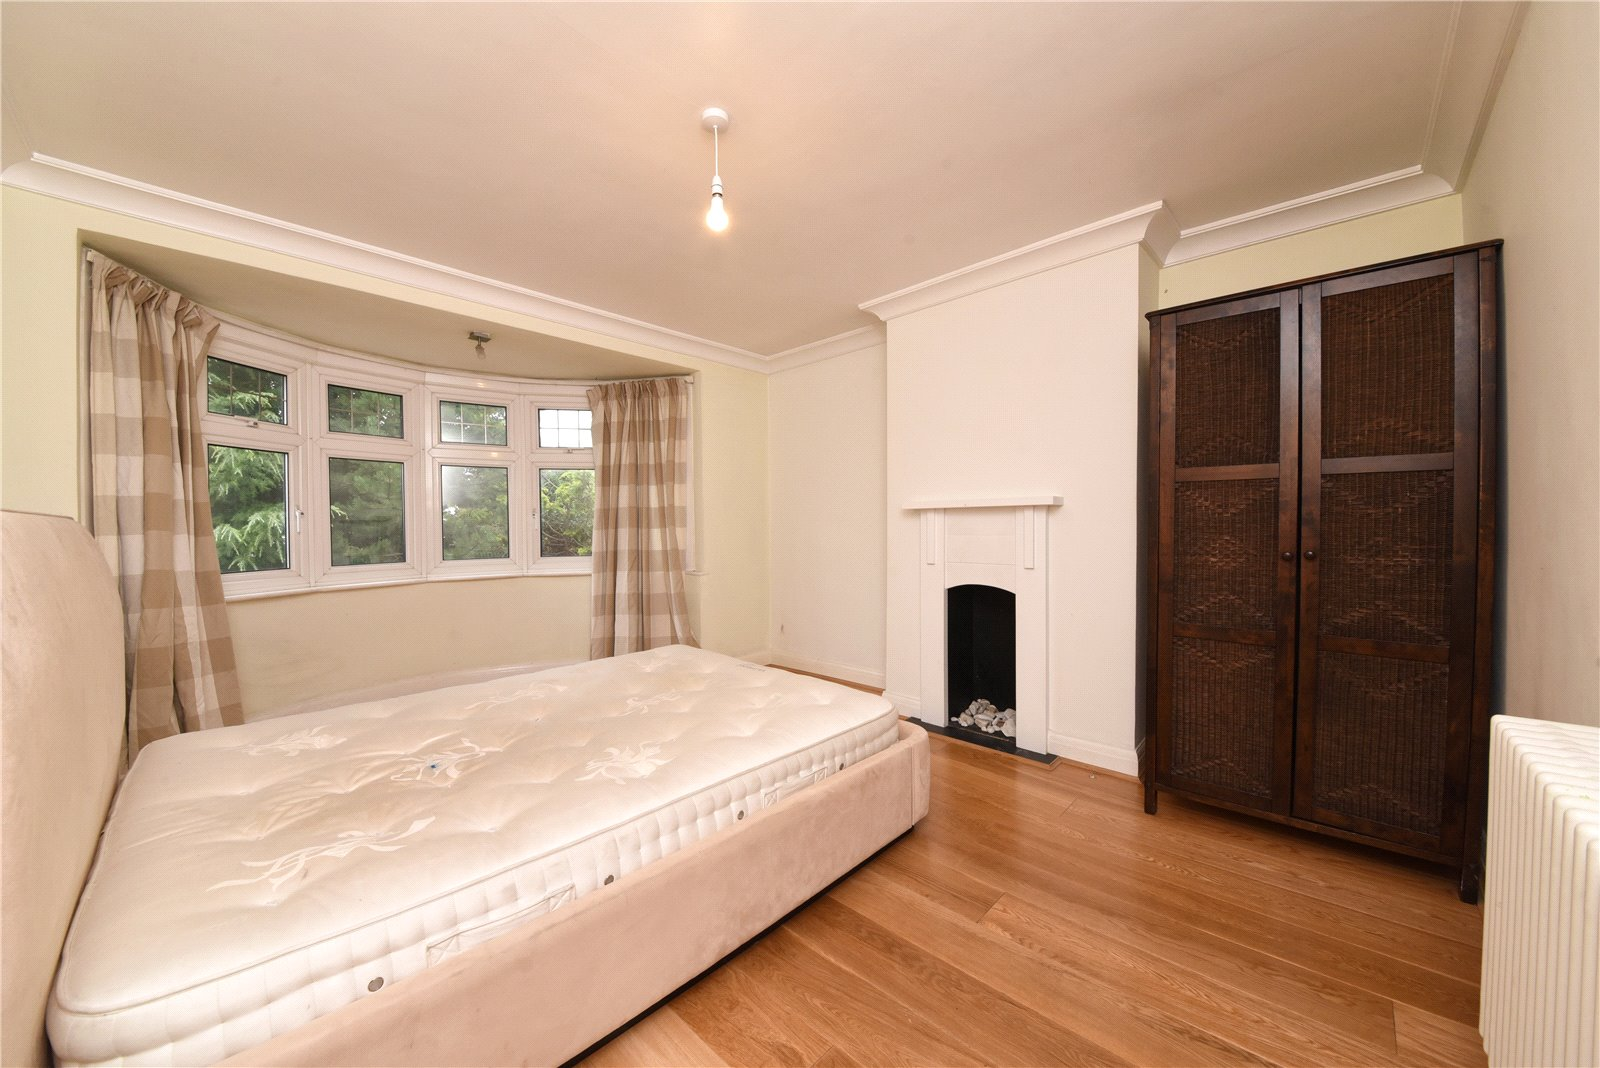 4 bed house to rent in Longland Drive, Totteridge 8